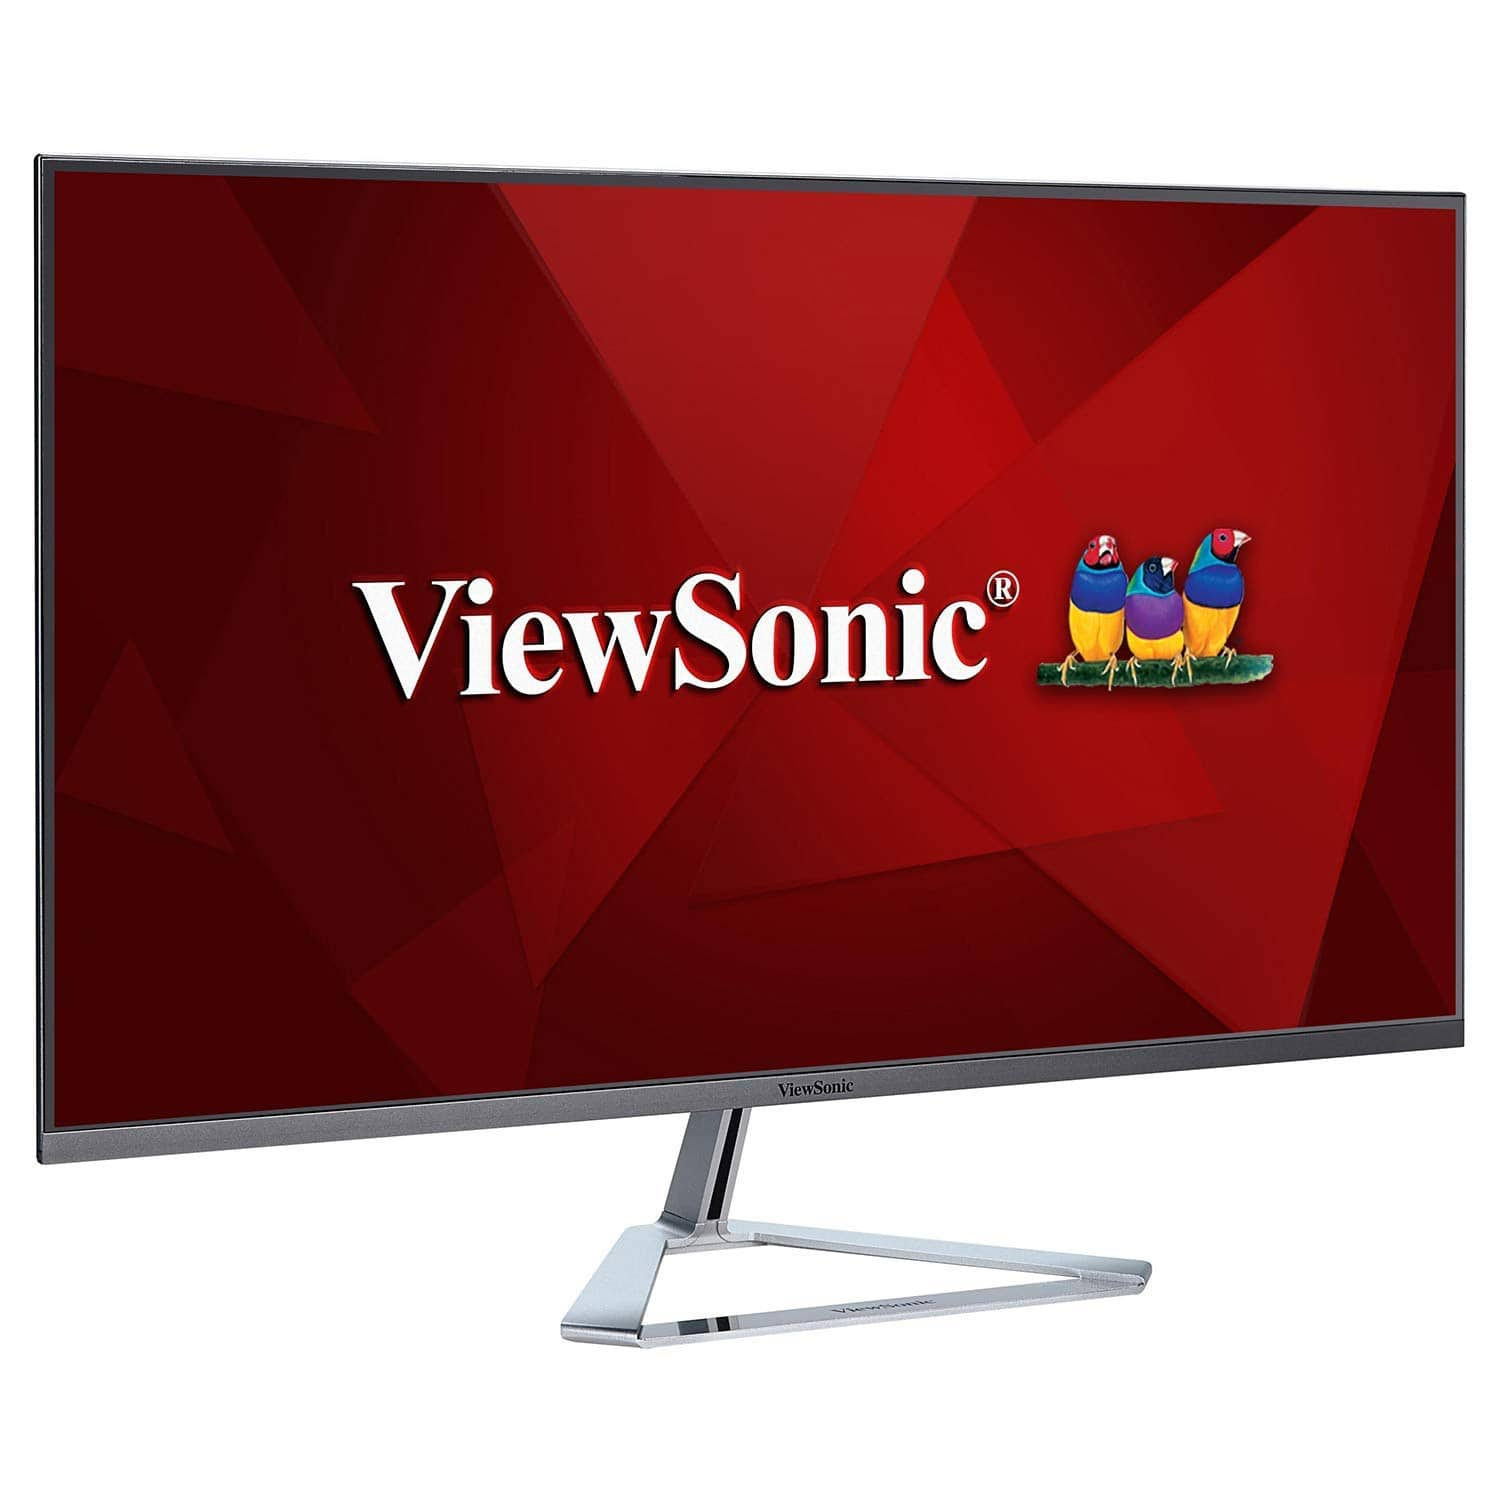 $169.0 -  ViewSonic VX3276-MHD 32 Inch 1080p Frameless Widescreen IPS Monitor with HDMI and DisplayPort